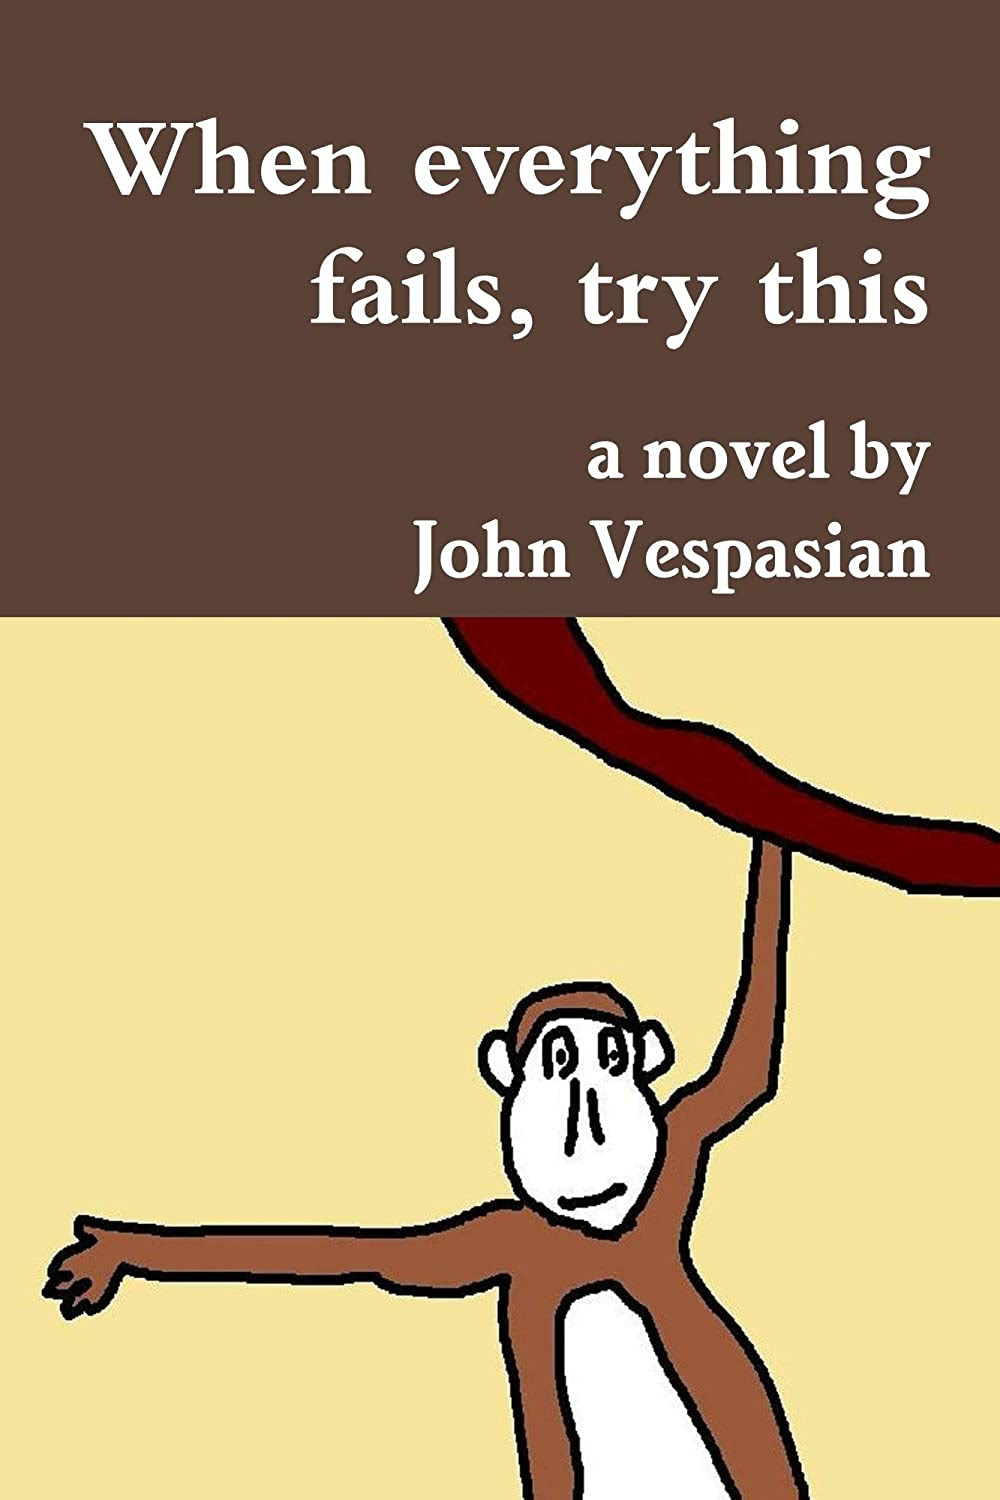 When everything fails, try this